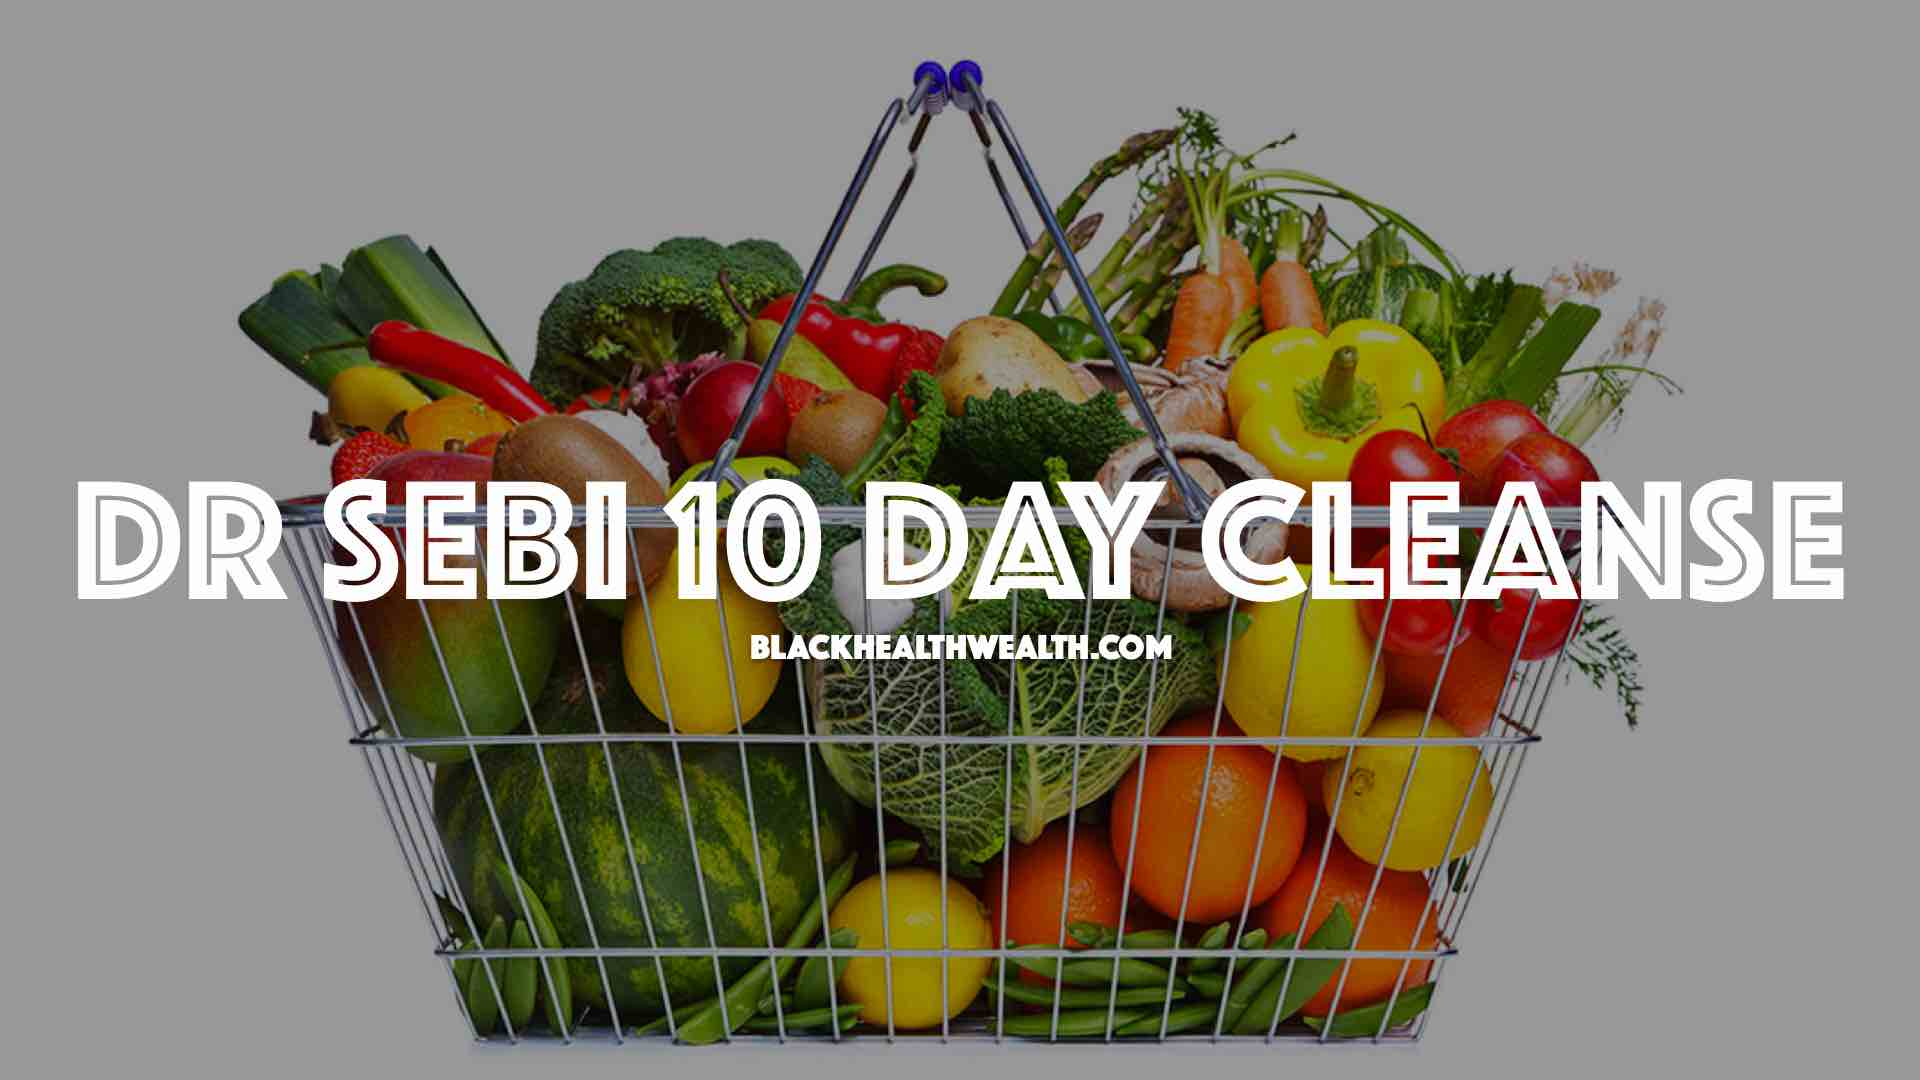 Master Cleanse (Lemonade) Diet: Does It Work for Weight Loss?